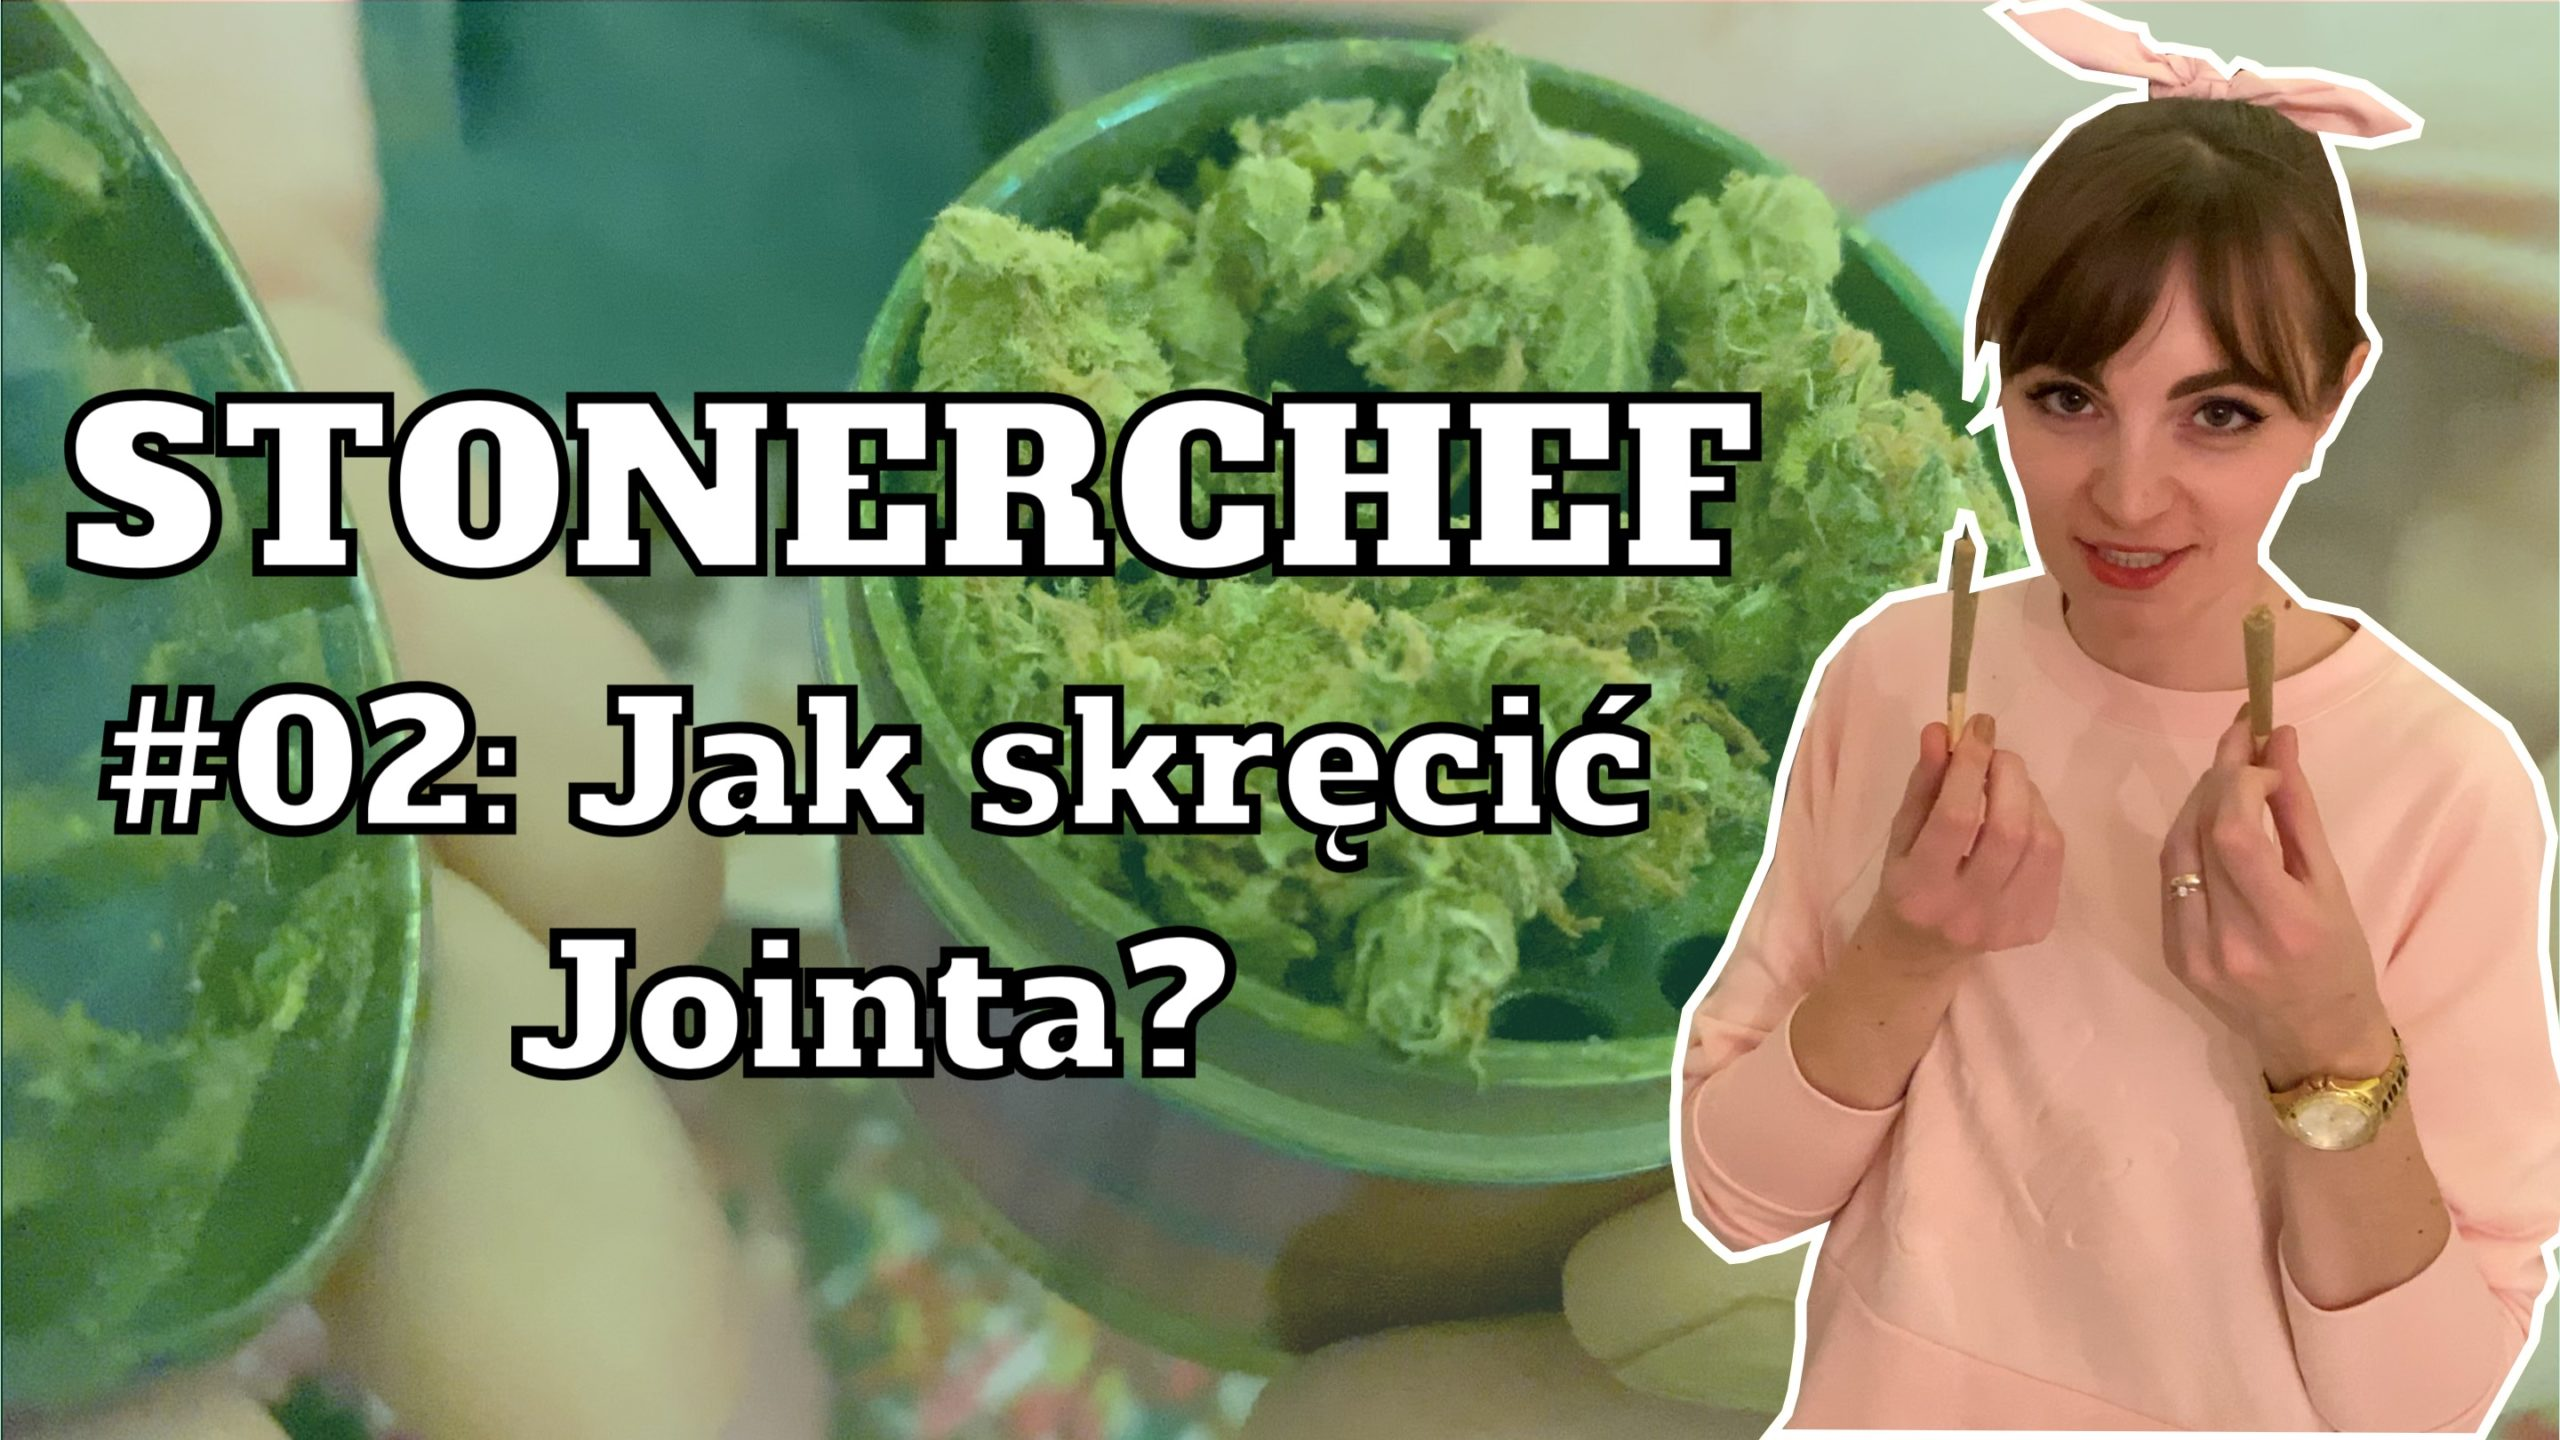 https://www.stonerchef.pl/wp-content/uploads/2019/11/jak-skrecic-jointa-scaled.jpg